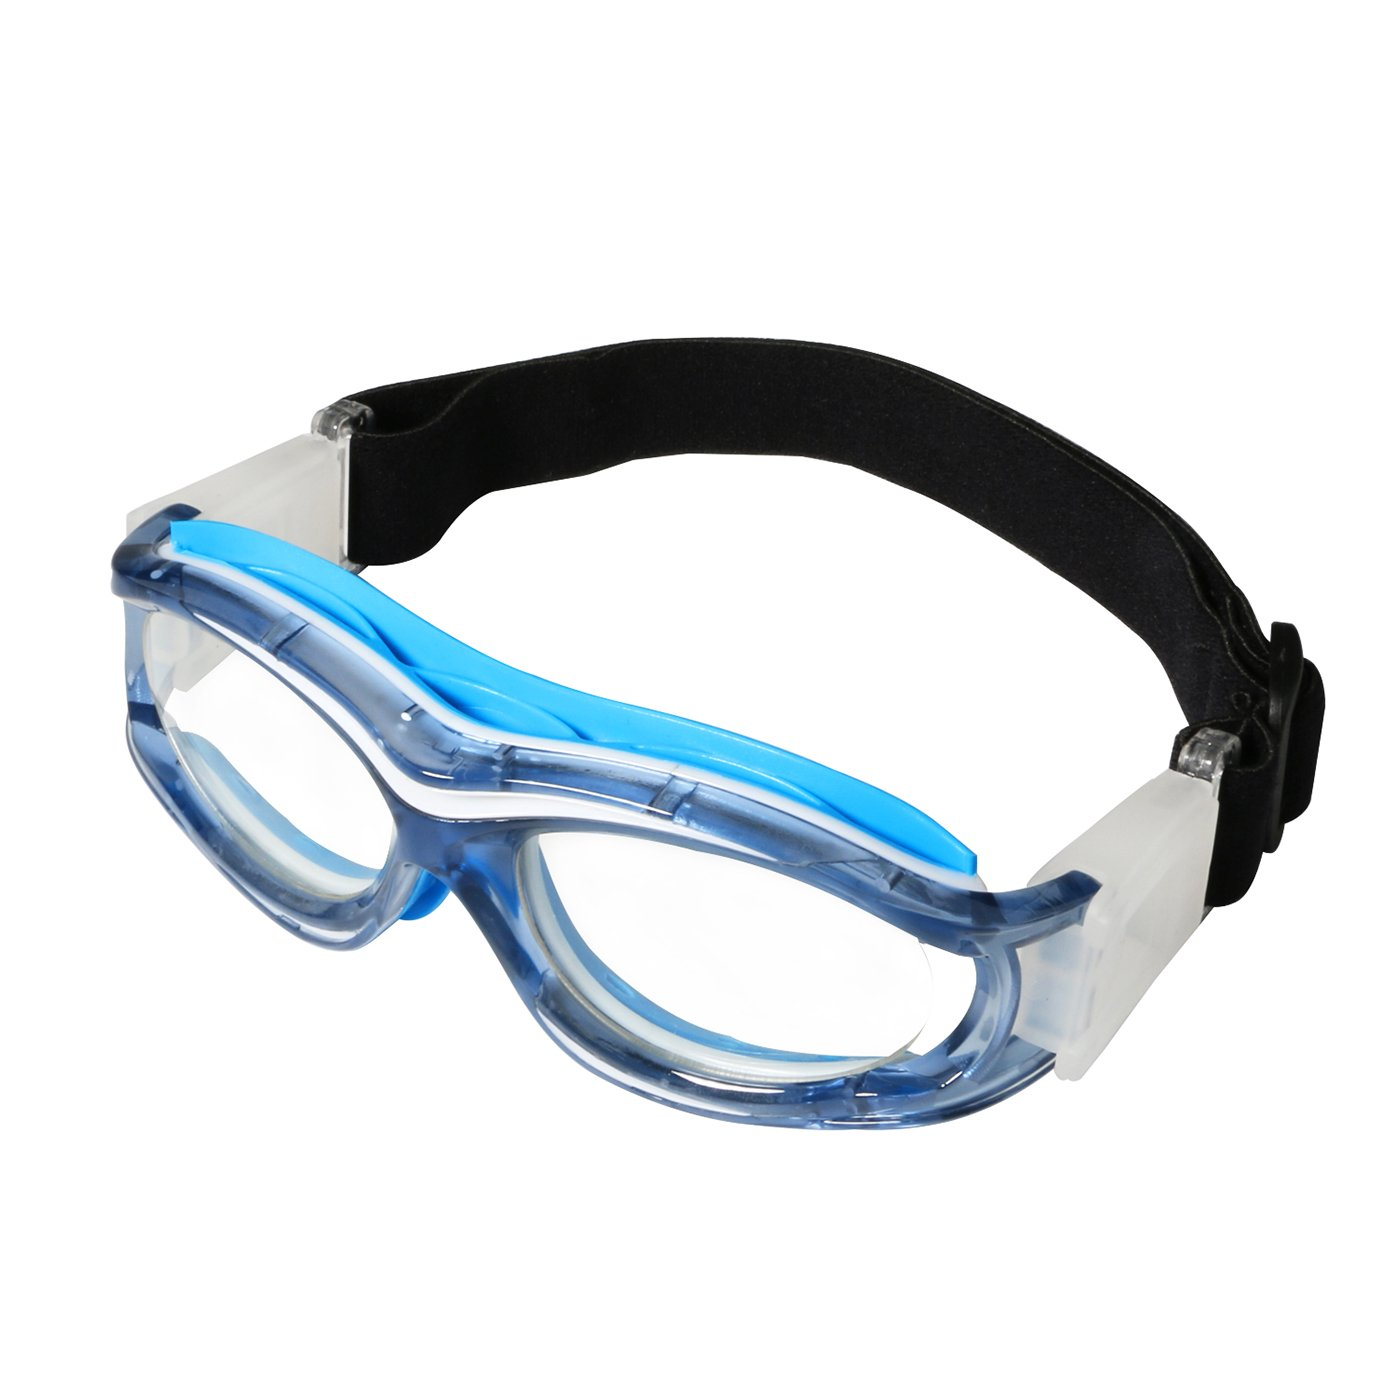 Kids Basketball Goggles Clear Lens Teenager Sports Glasses Protection Impact-resistant Glasses Eyewear with Adjustable Strap Removable Headband Sports Goggles